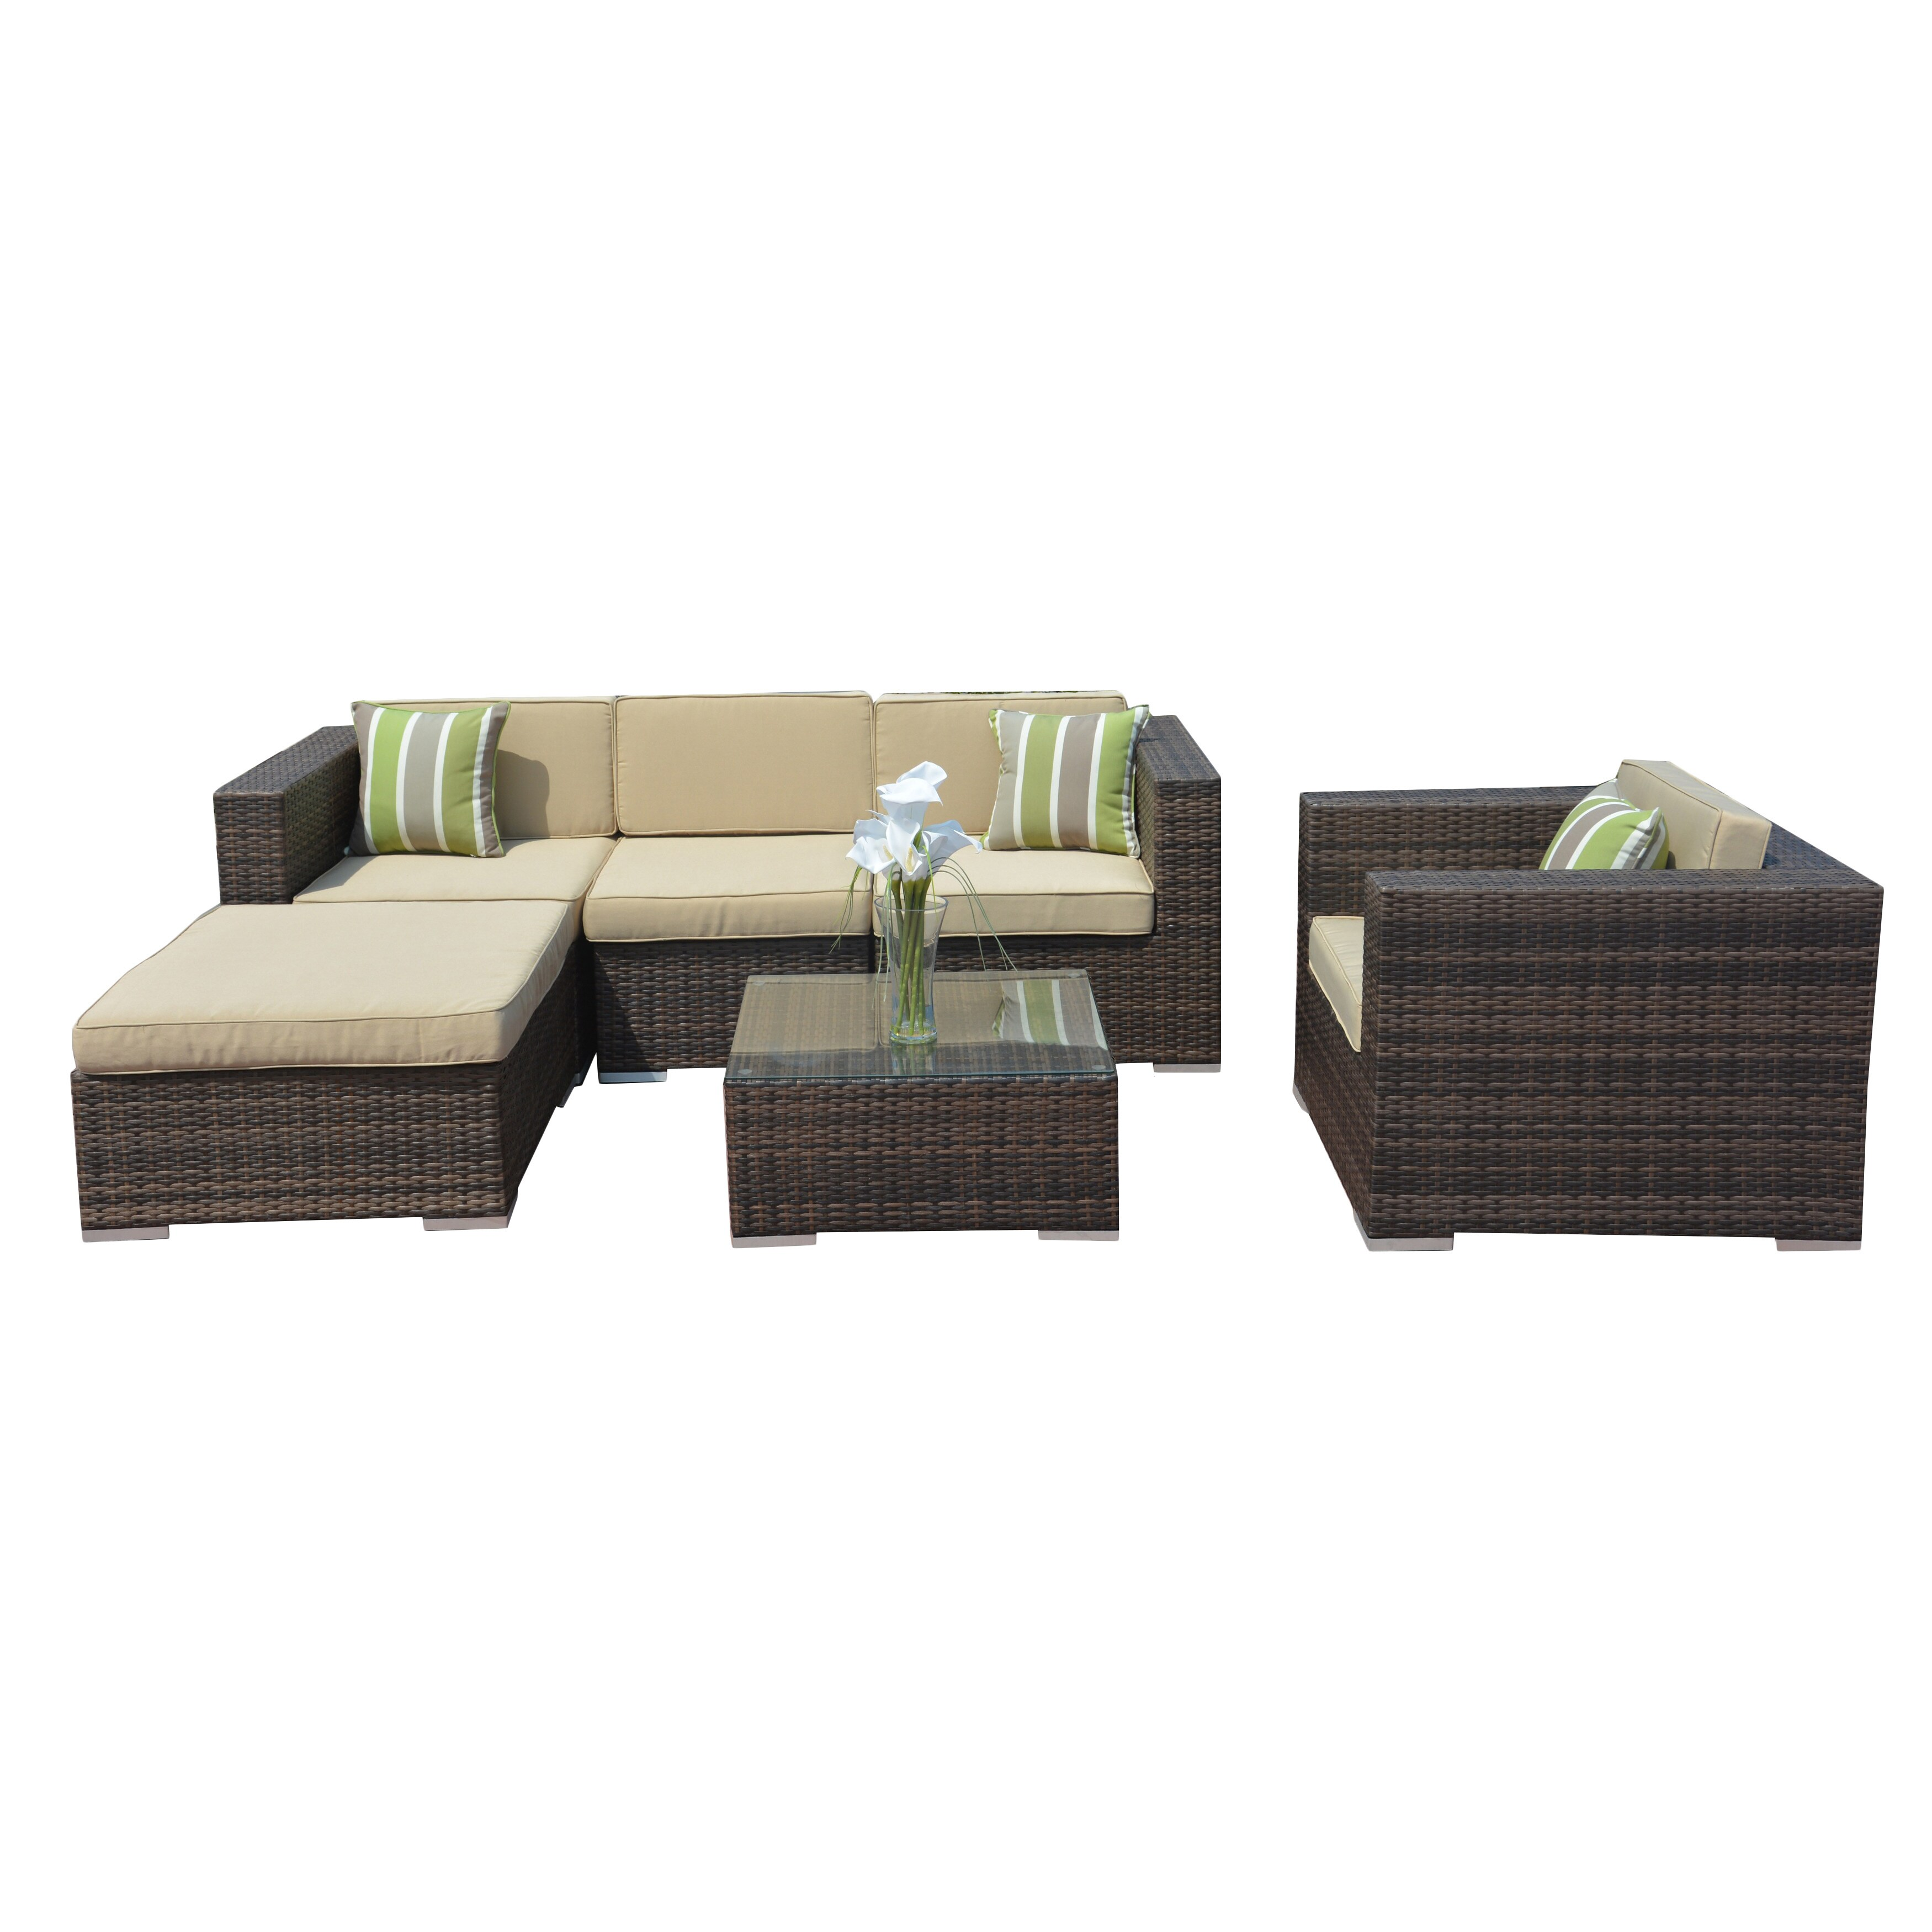 Cheap L Shaped Rattan Sofa Jasmine 6 Piece Pe Wicker L Shaped Sectional Sofa Set By Direct Wicker